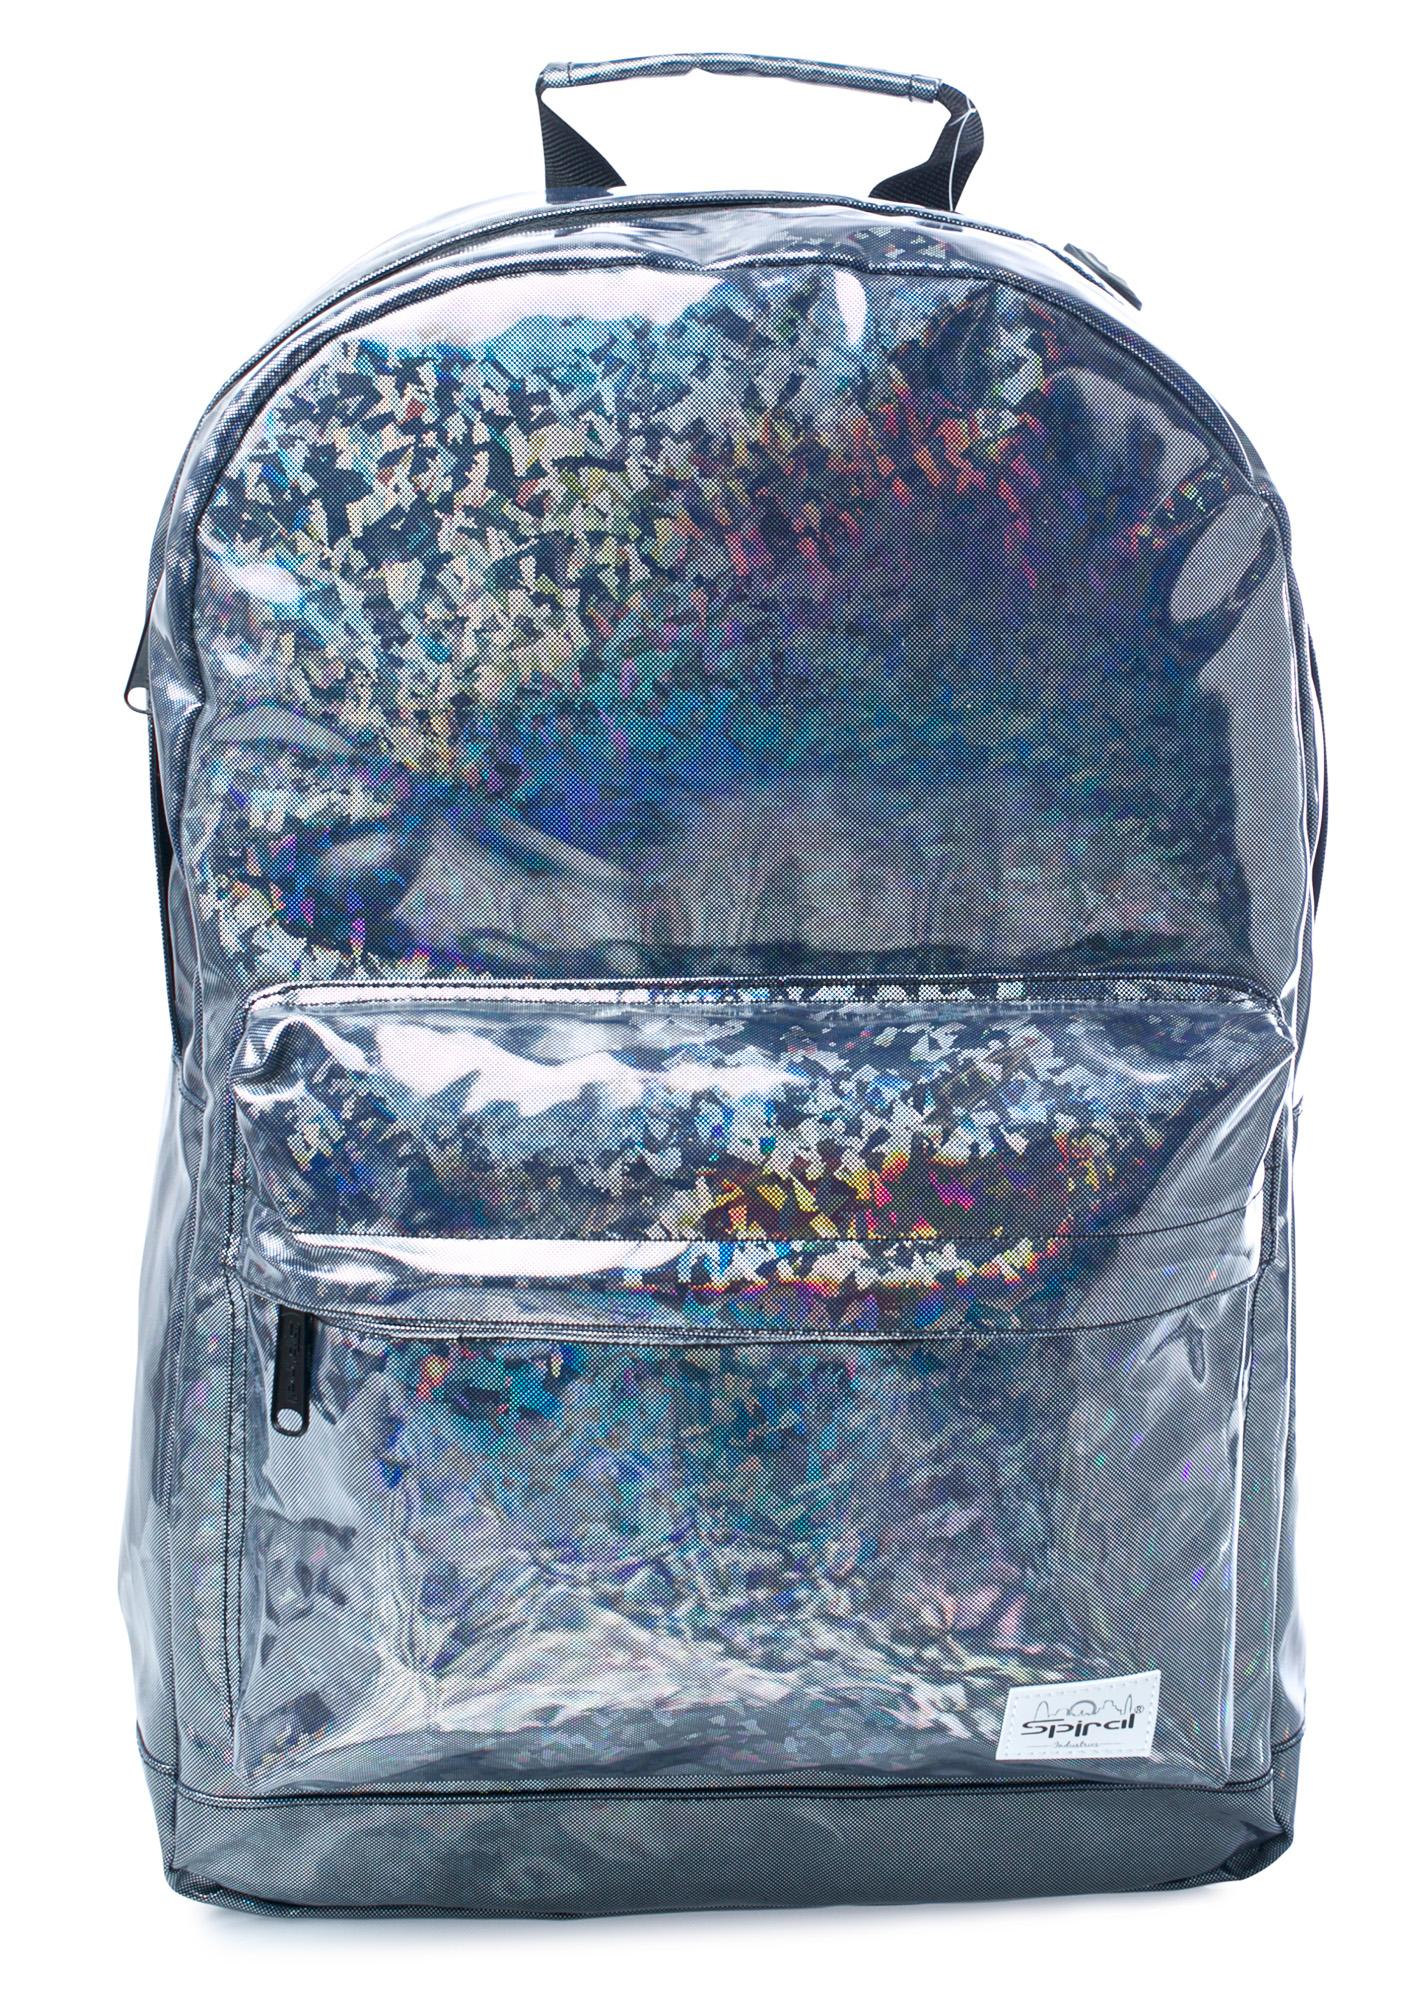 Spiral UK Diamond OG Backpack